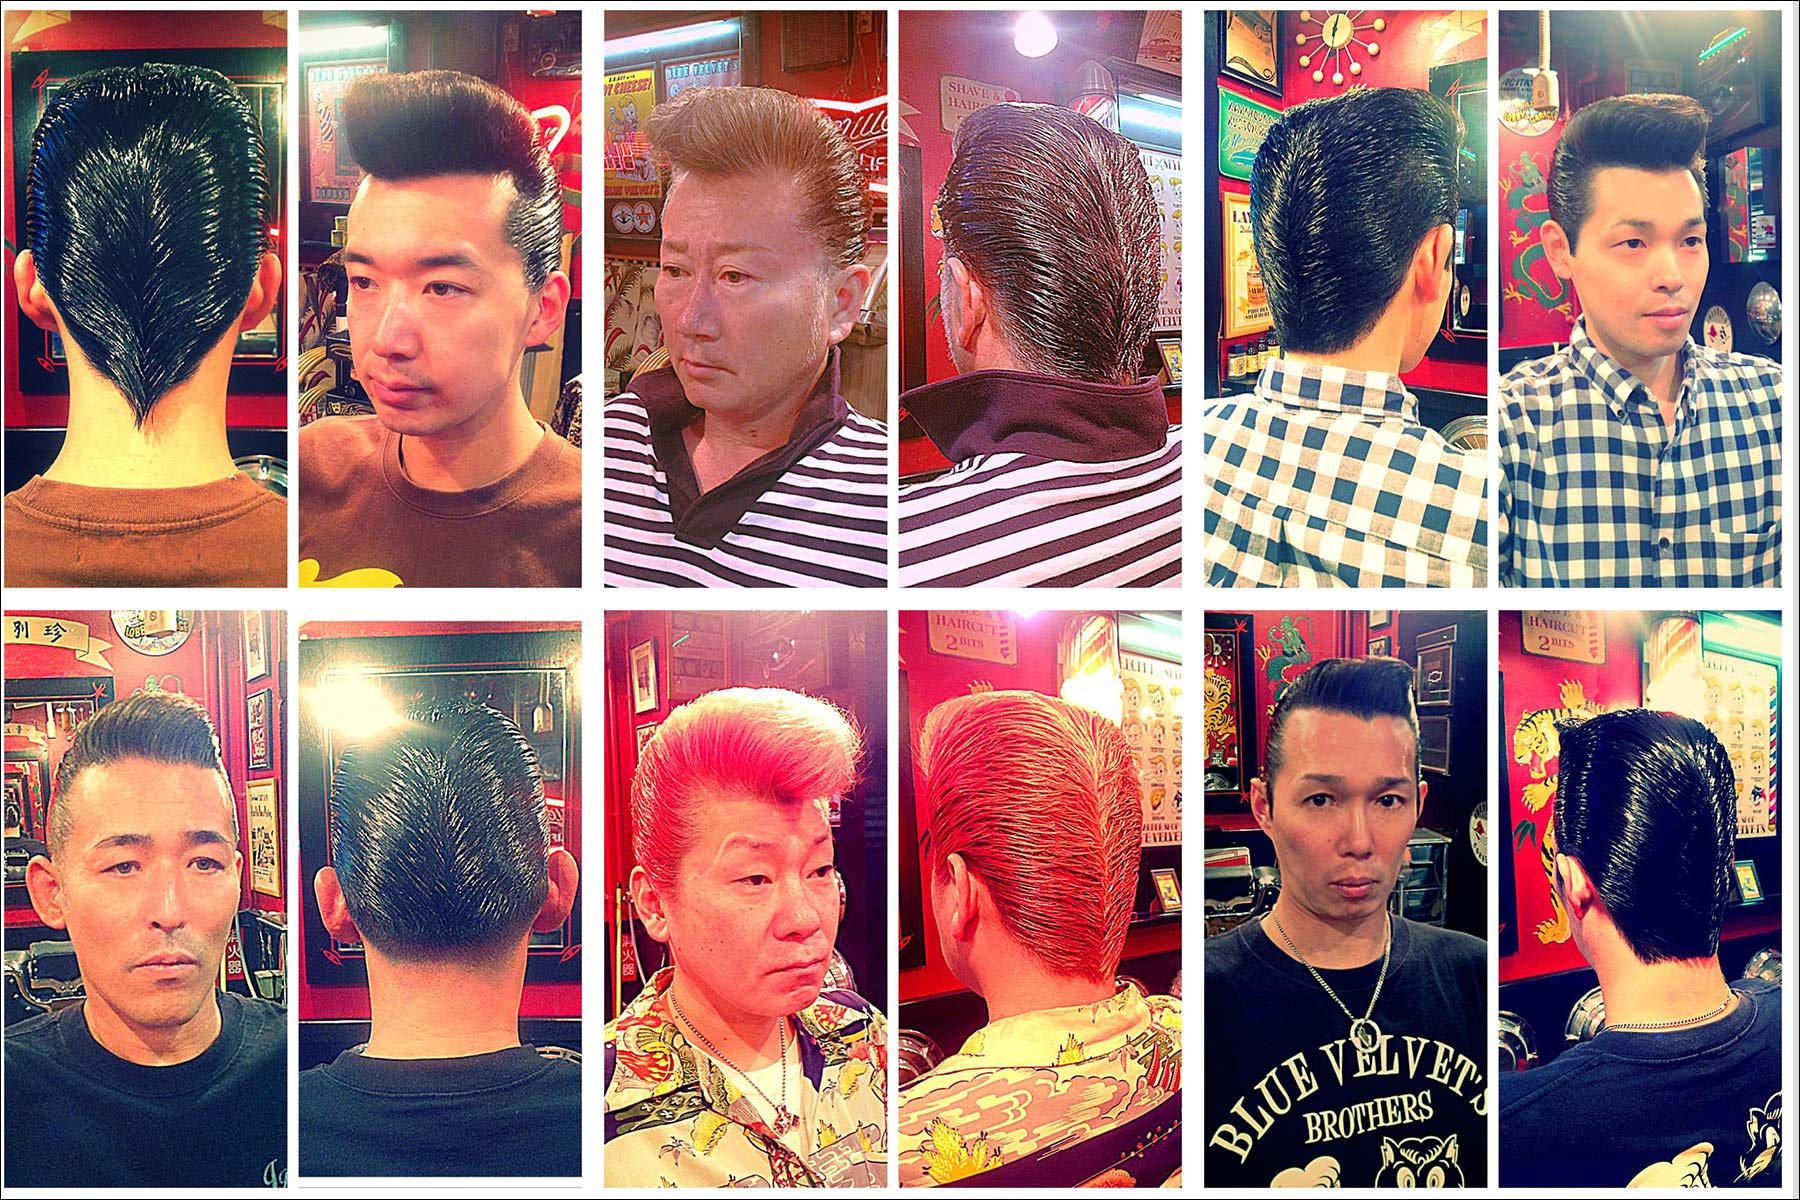 Portraits of Japanese customers in 1950s style pompadours from Blue Velvet's barber shop. Ponyboy magazine NY.